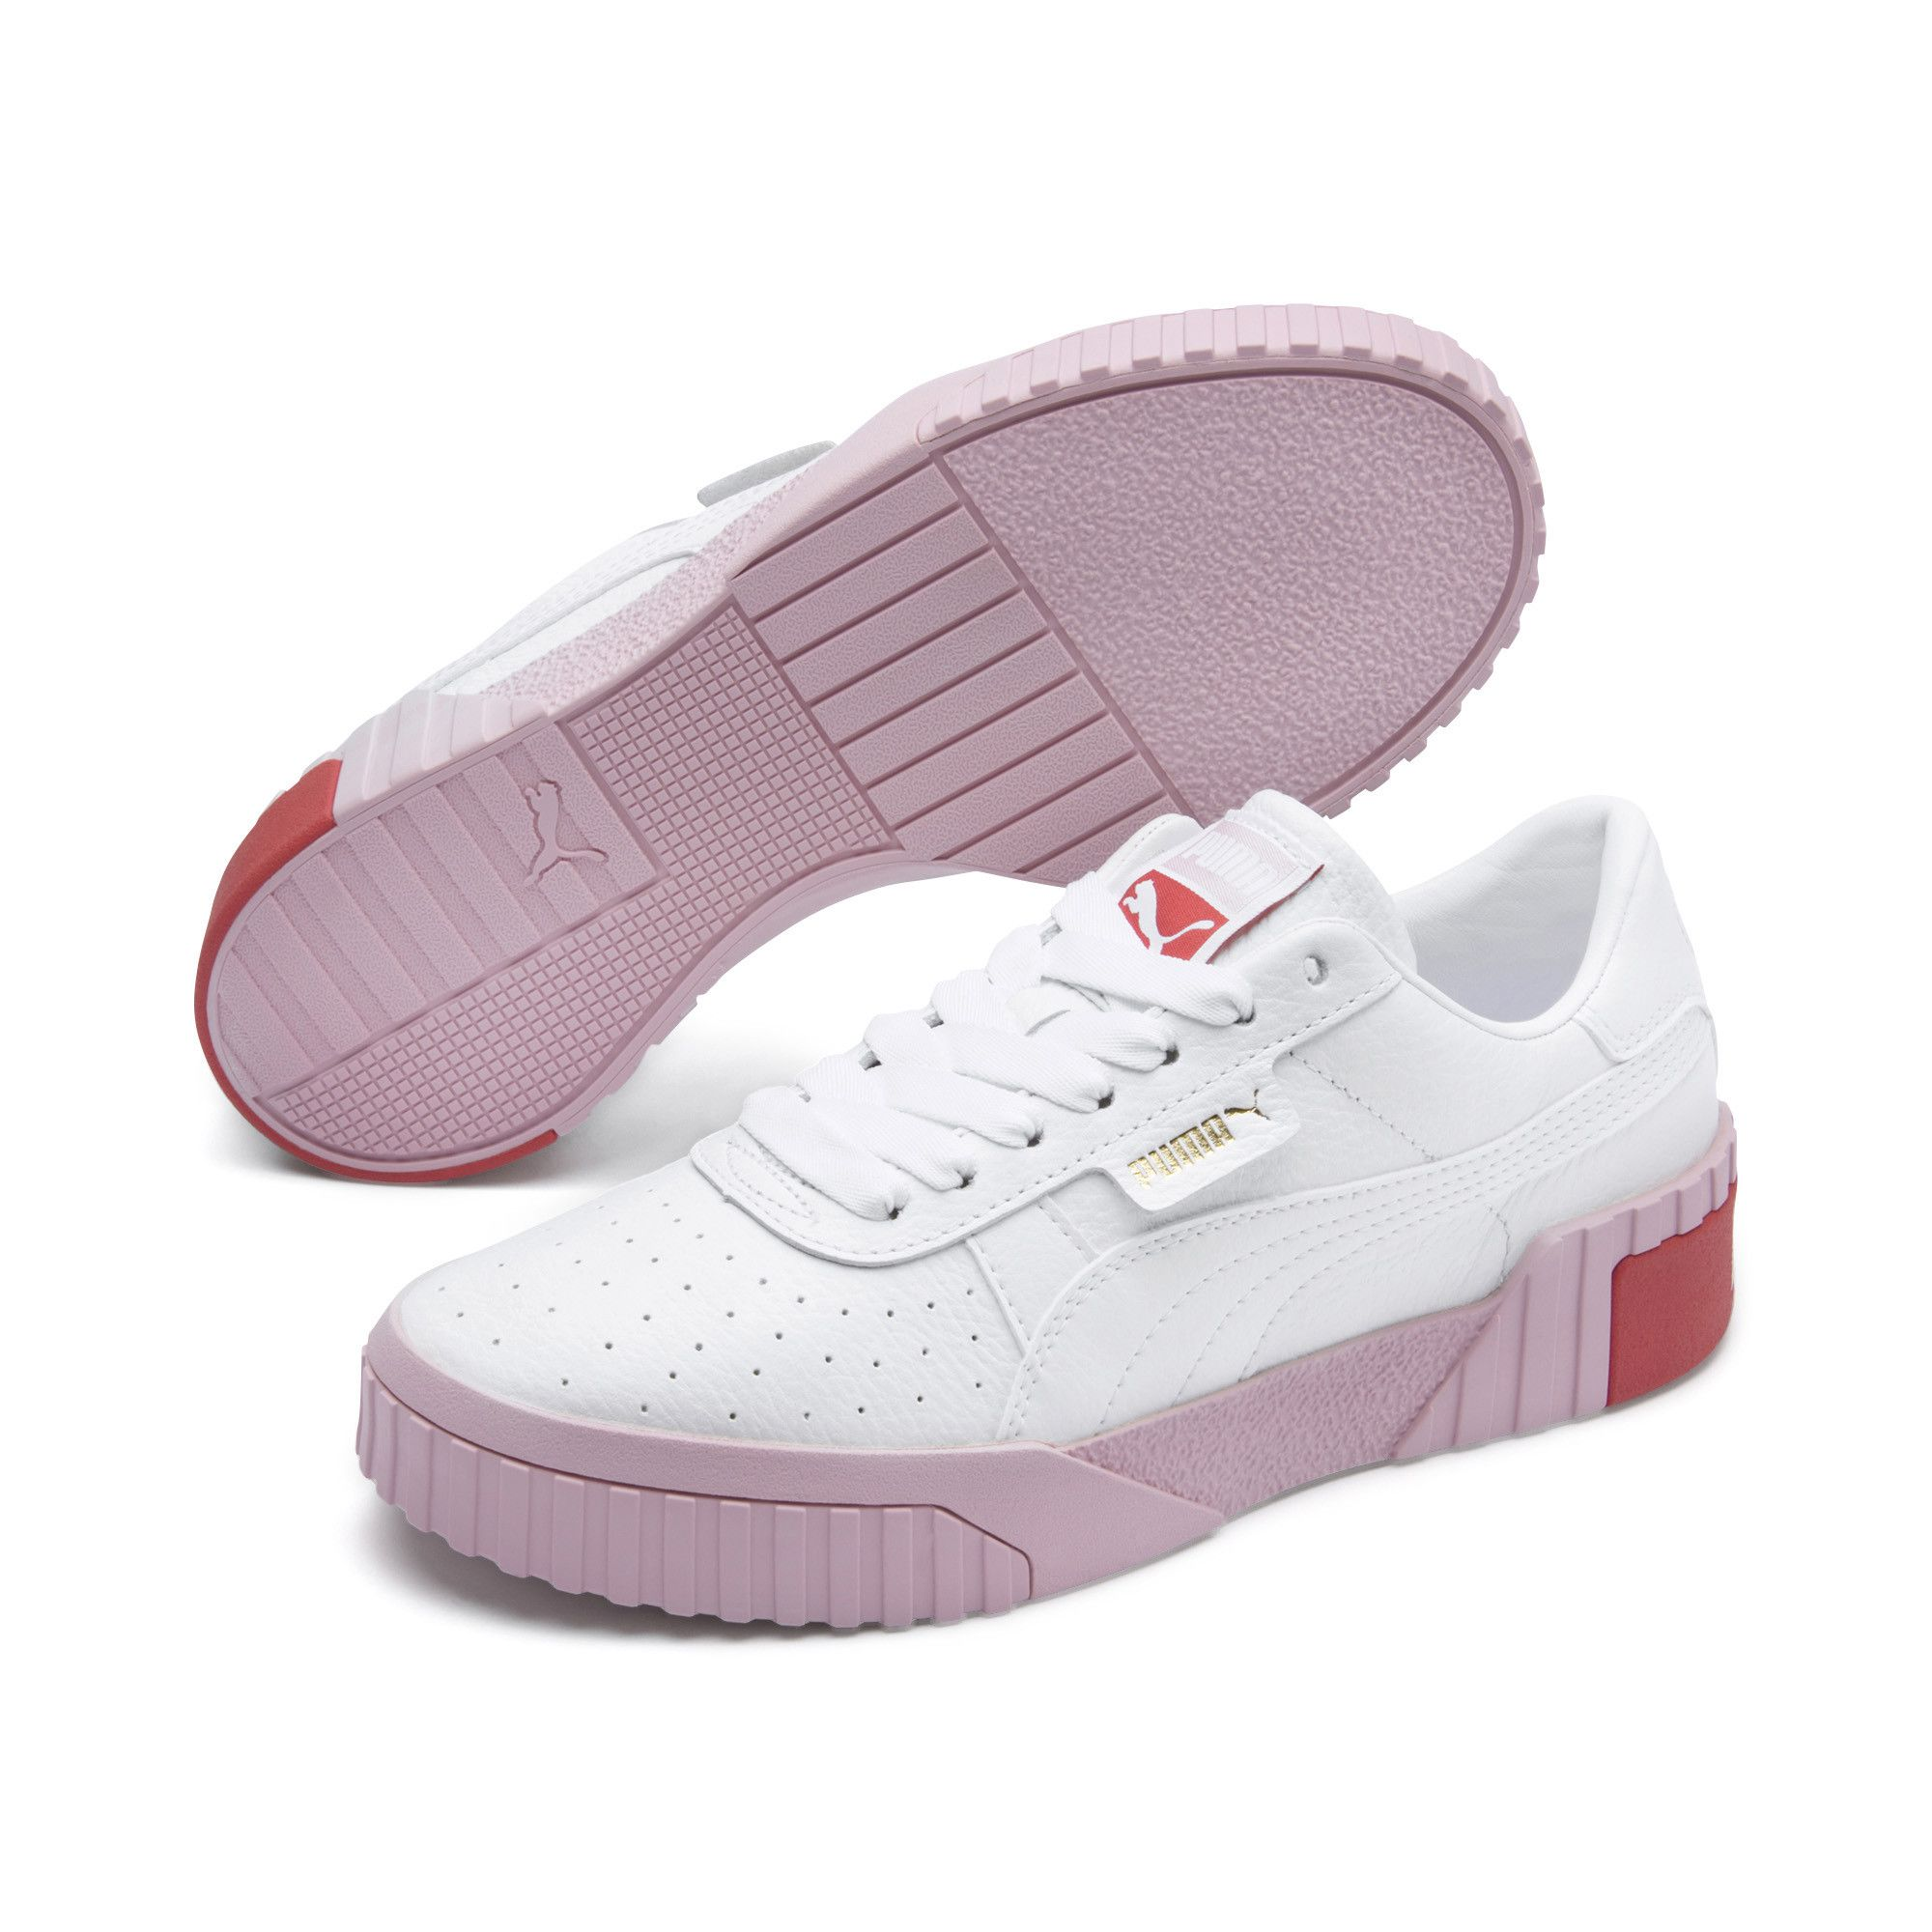 Cali Women's Sneakers | Puma White Puma Black | PUMA Lows